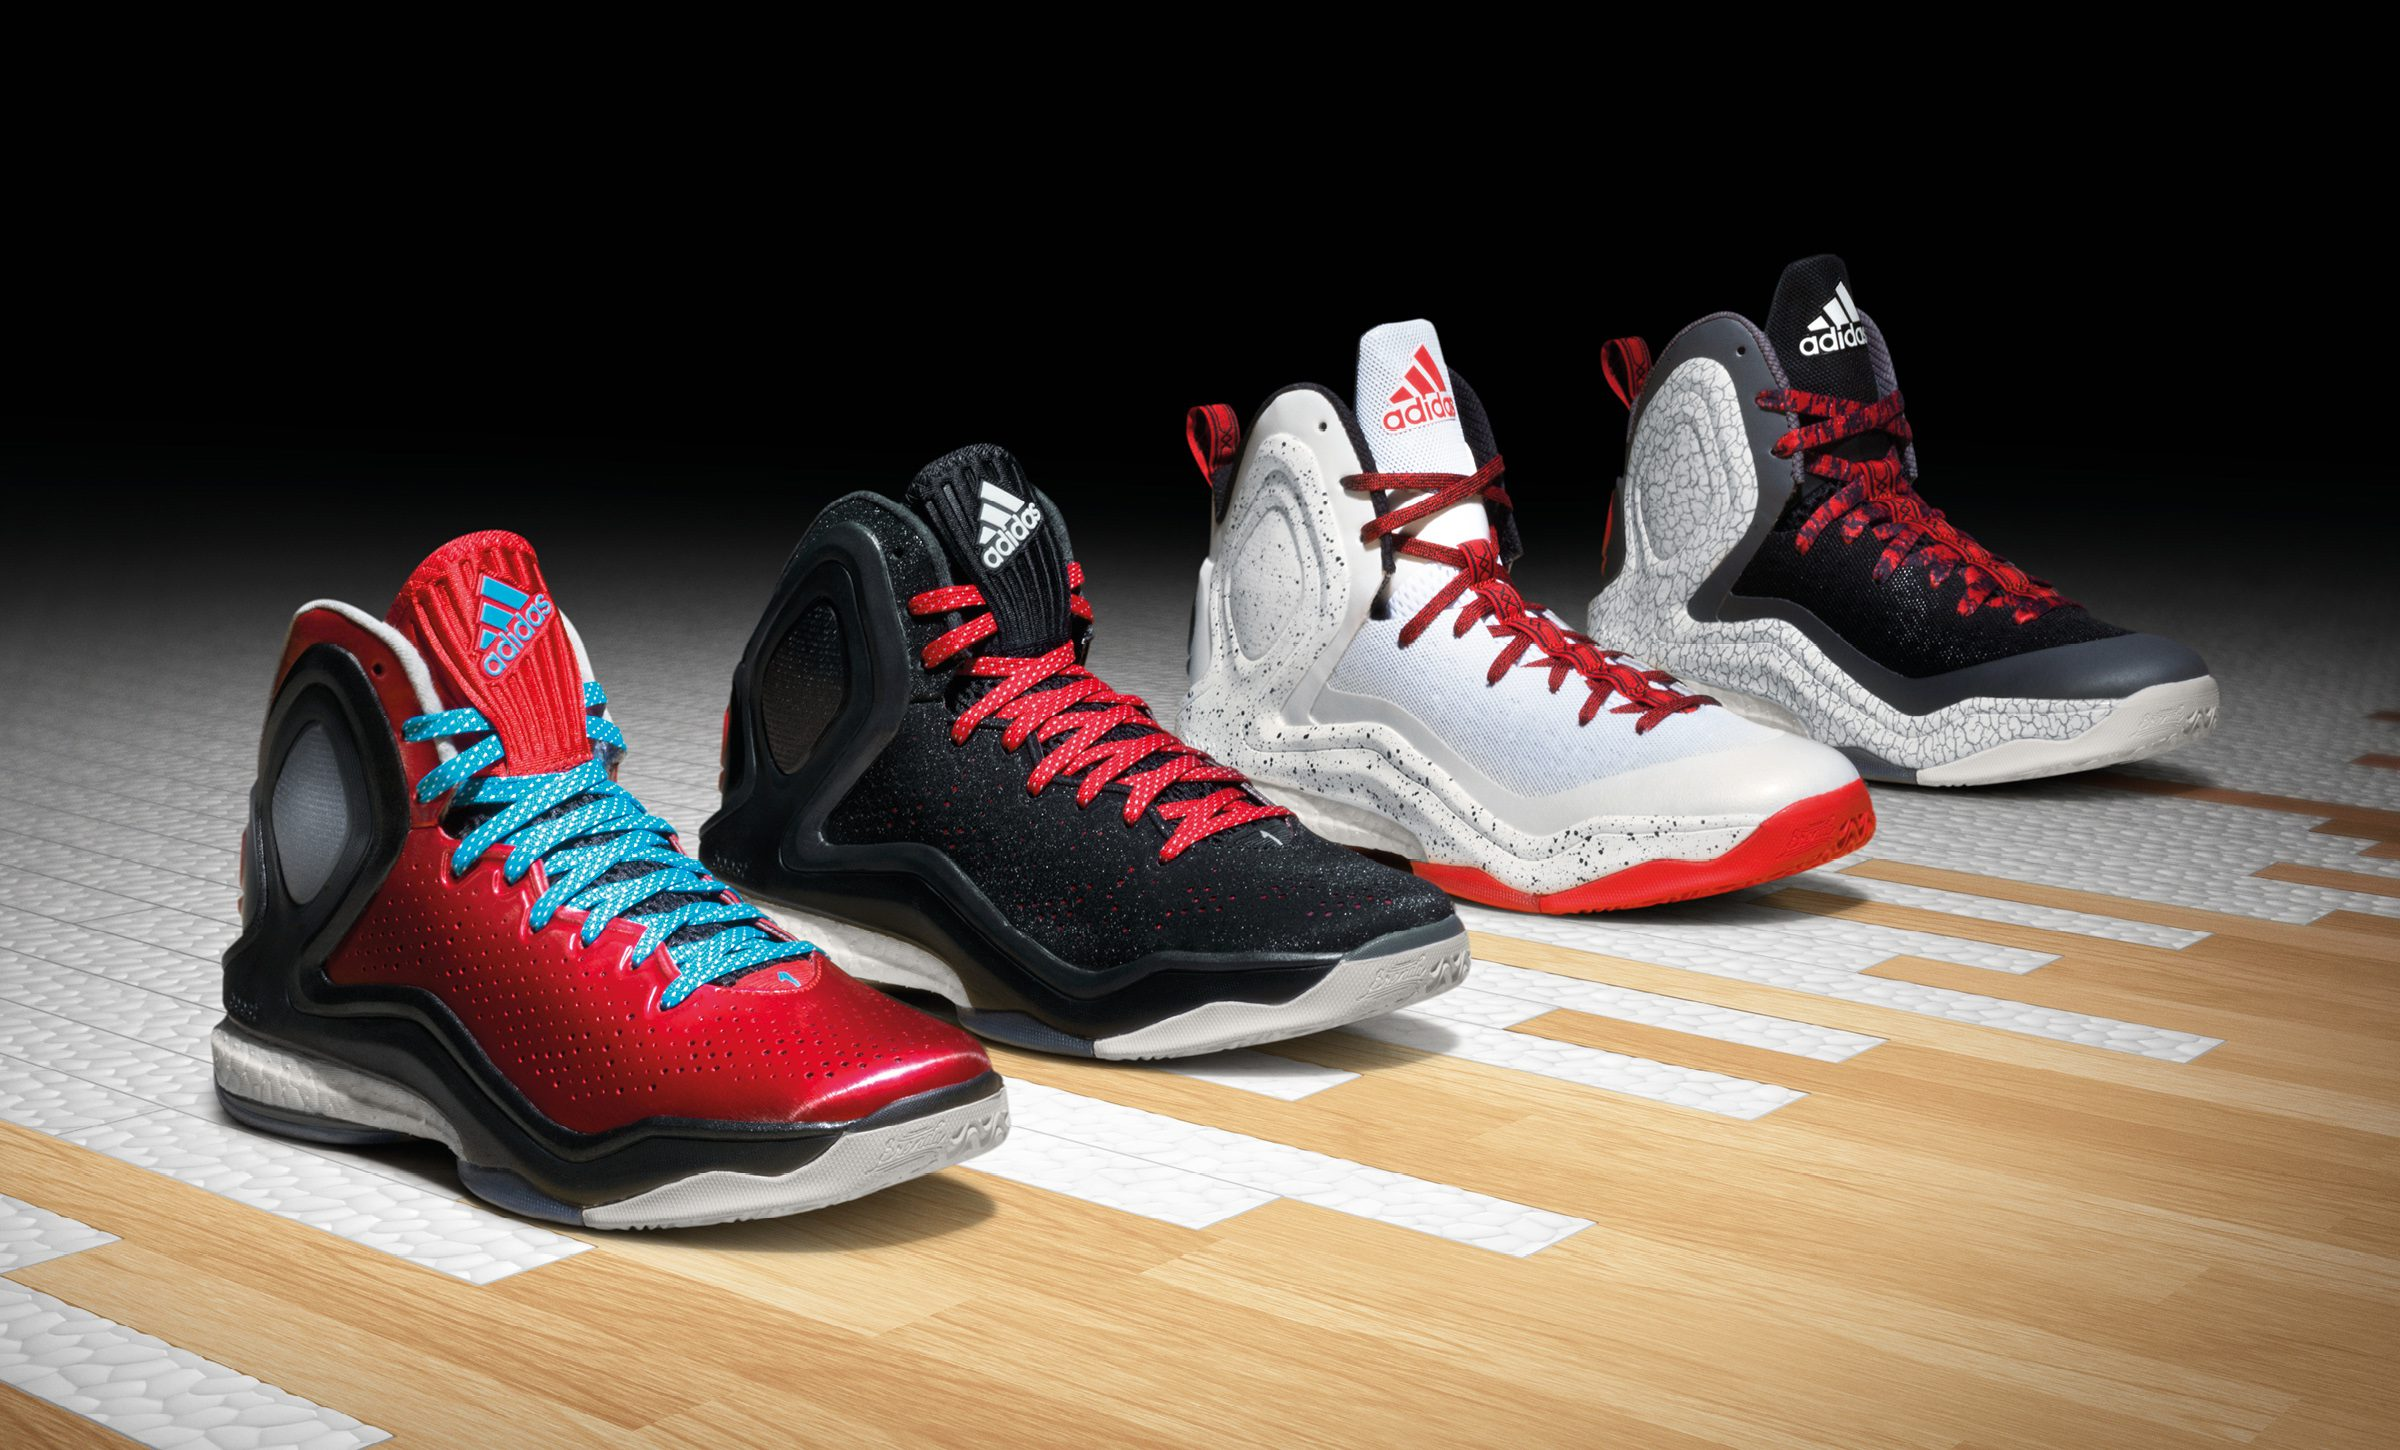 new products dfa34 83ad0 ... 1 adidas D Rose 5 Boost Group, ...